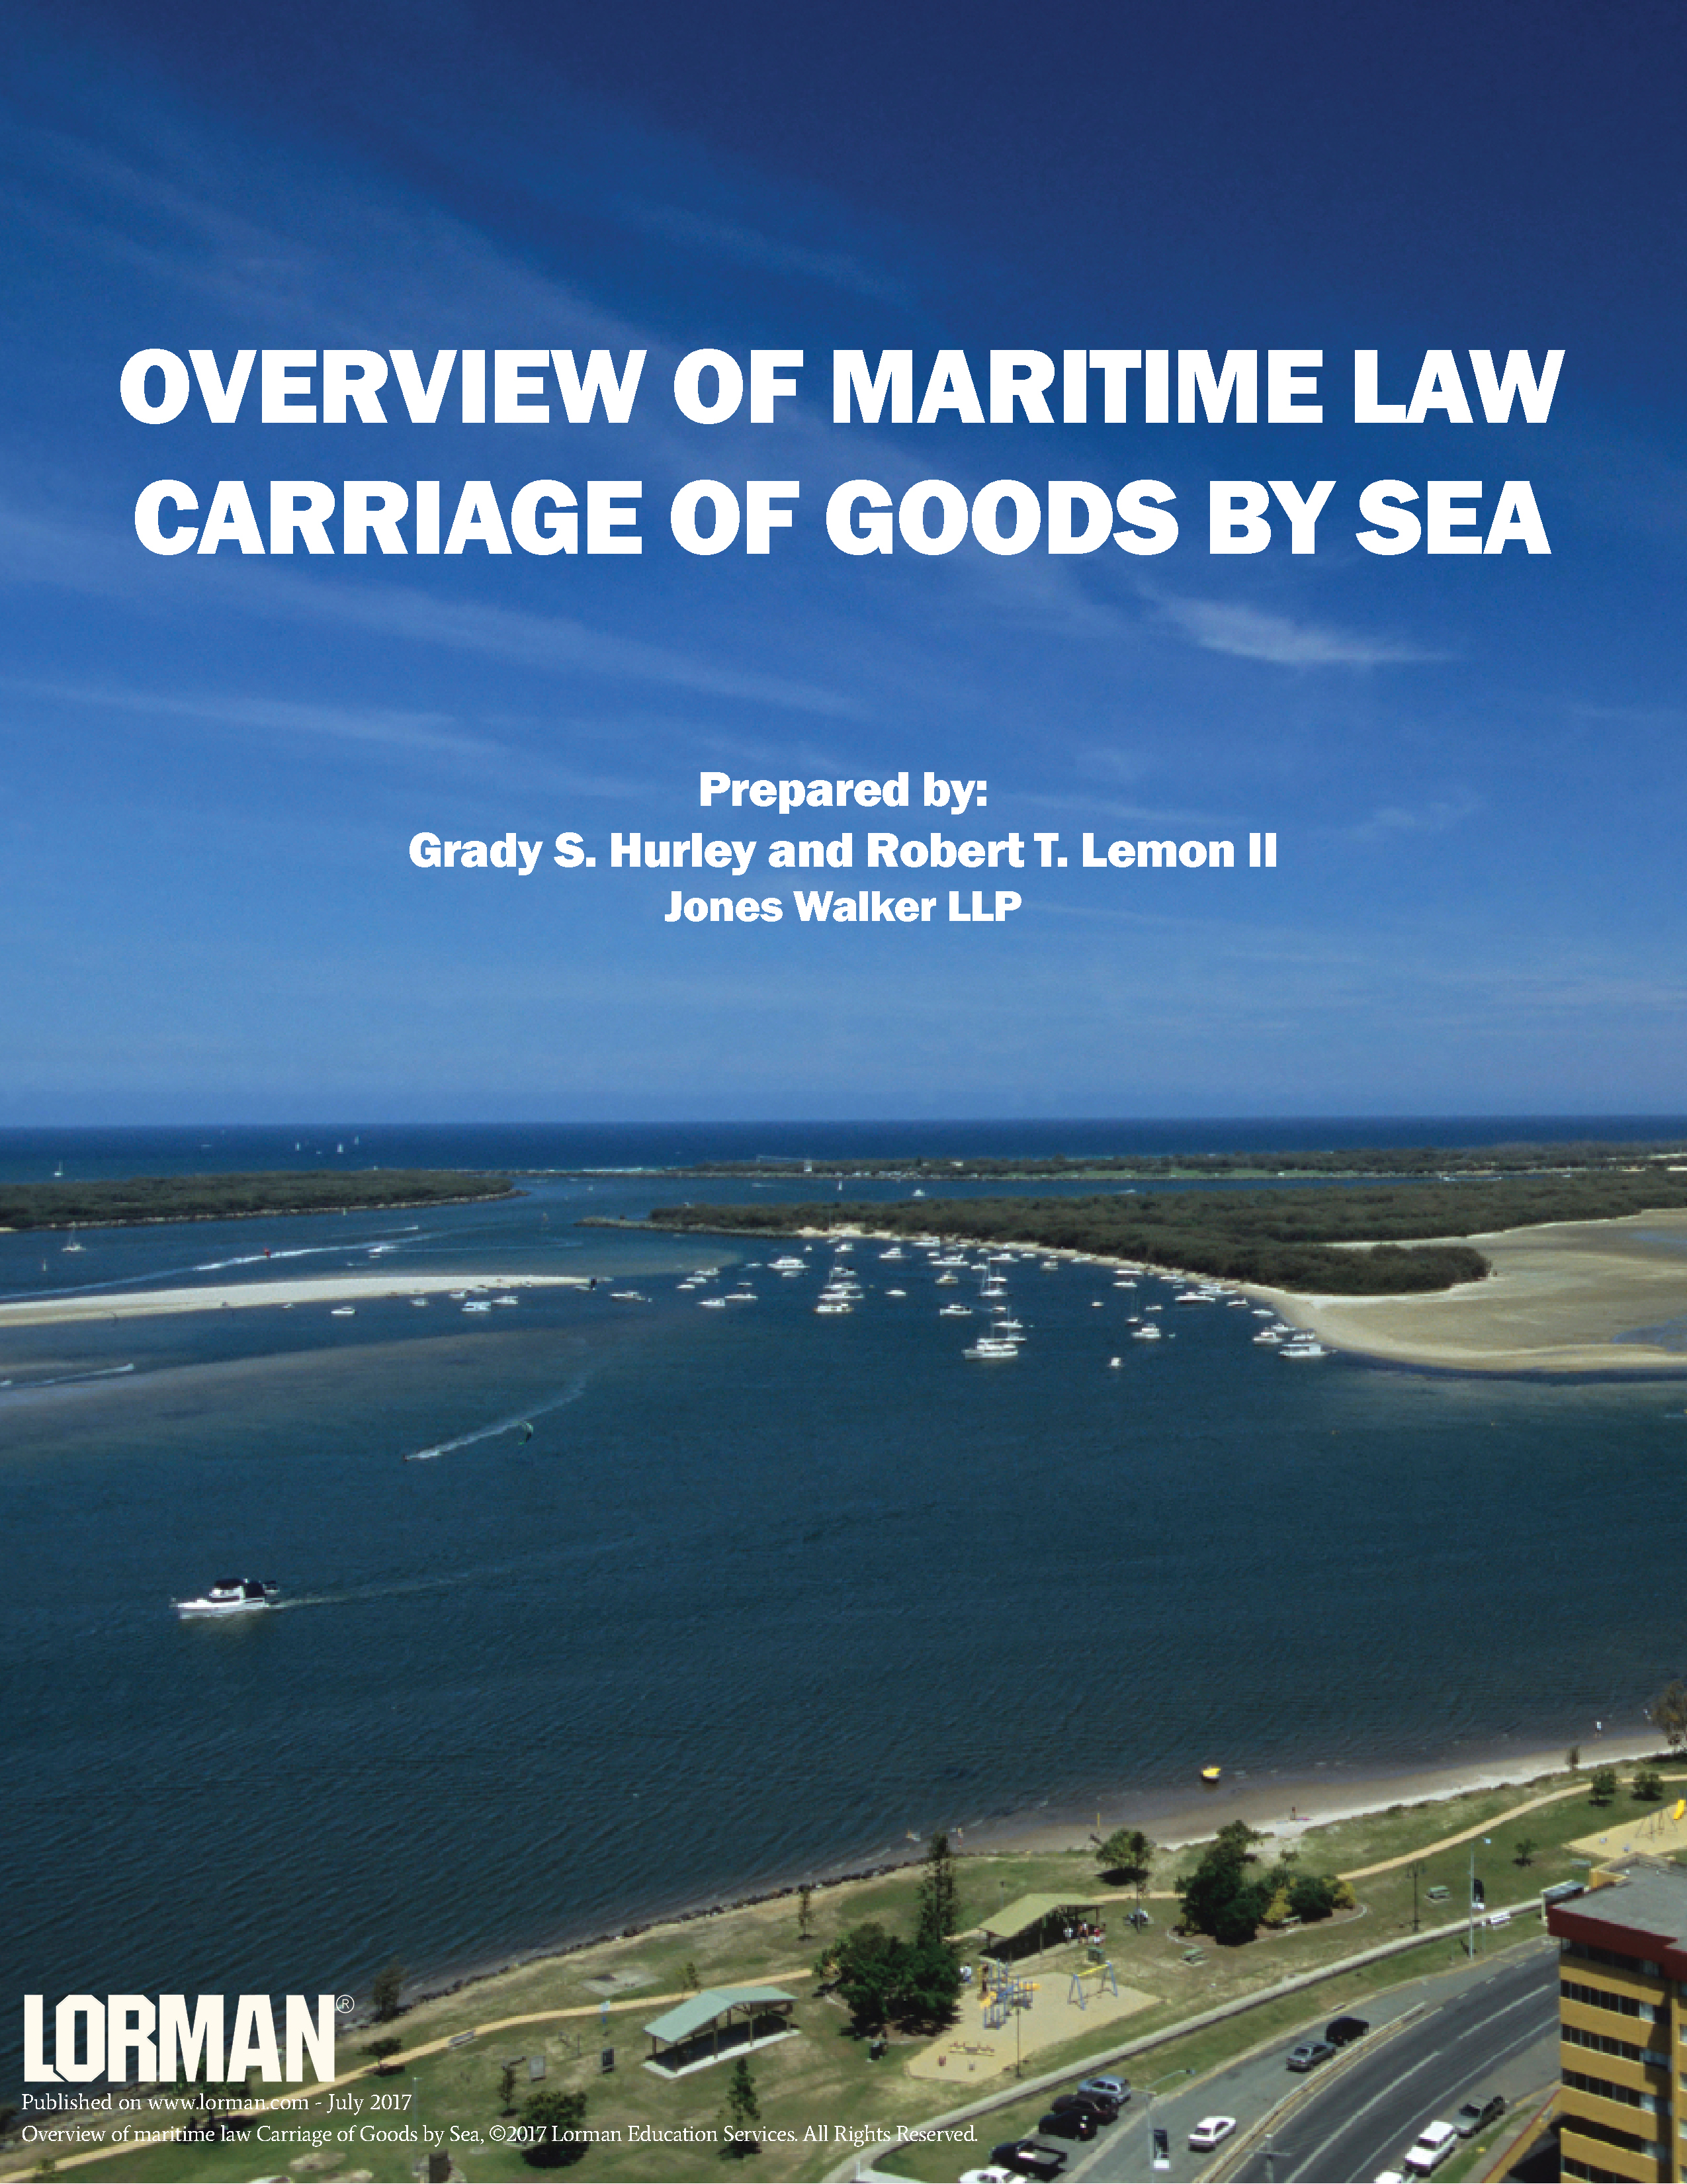 Overview of Maritime Law - Carriage of Goods by Sea